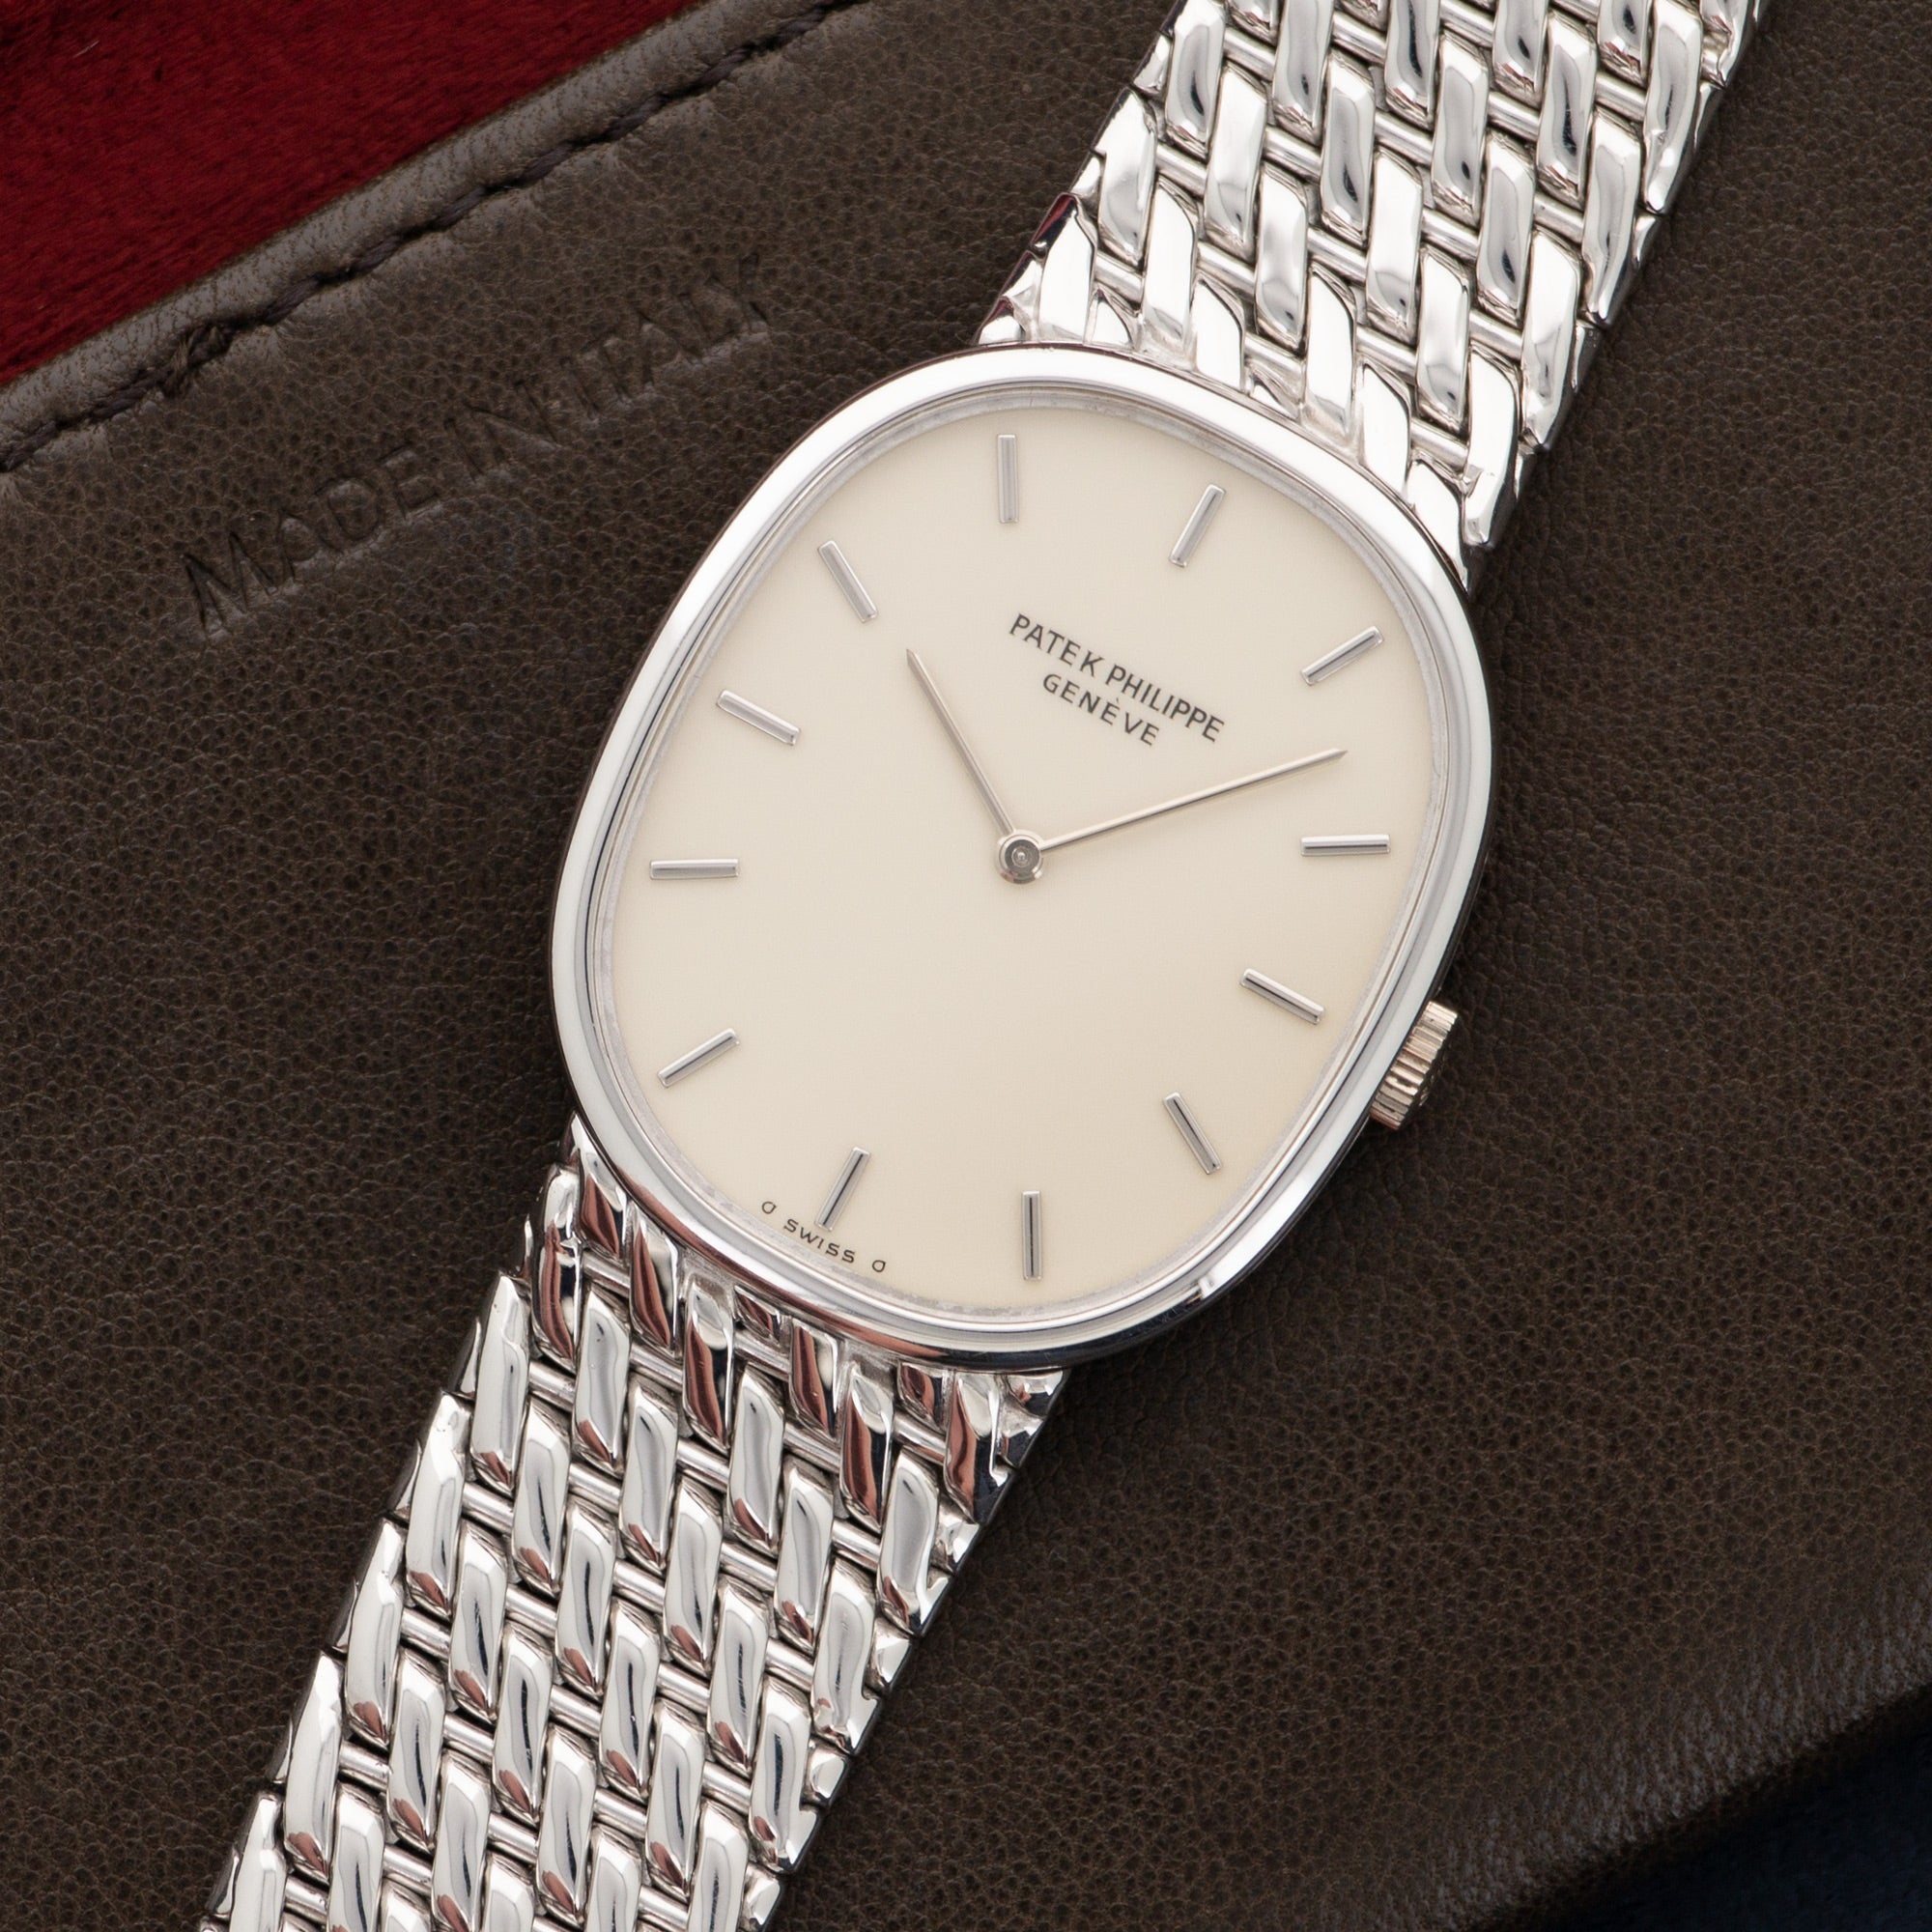 Patek Philippe Ellipse 3848/17 18k WG  Likely Never Polished, Original Finish Unisex 18k WG Cream 27mm Manual 1980s White Gold Bracelet (190mm) Leather Travel Case